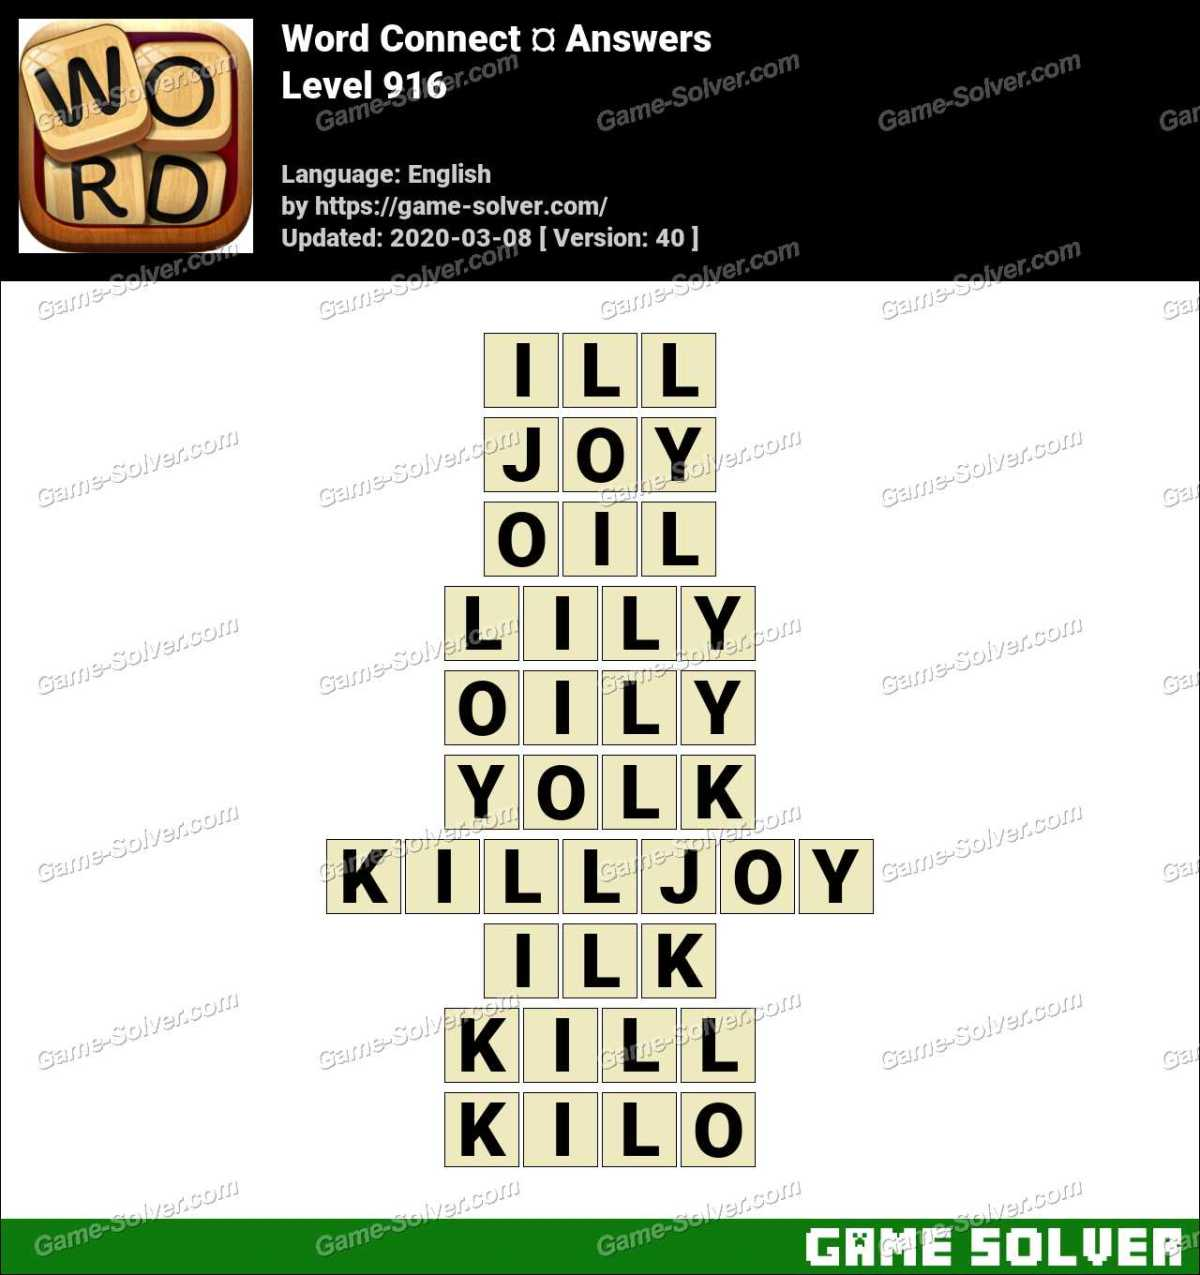 Word Connect Level 916 Answers